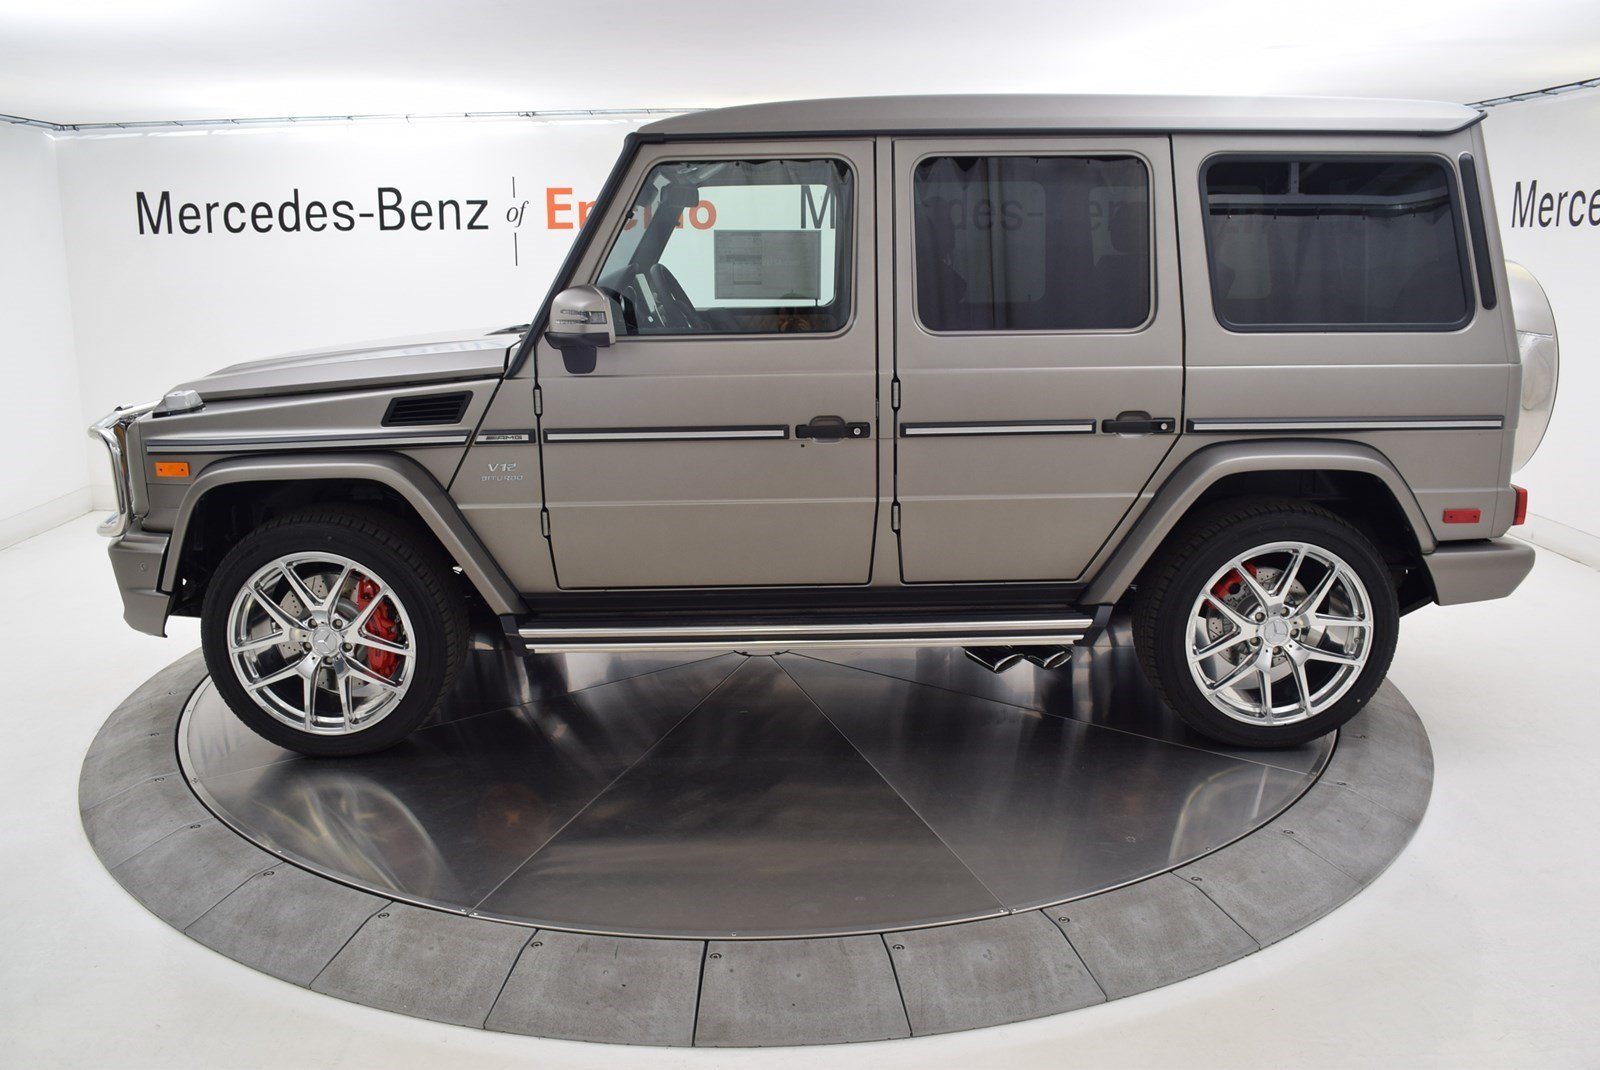 New 2017 mercedes benz g class amg g 65 suv suv in encino for Mercedes benz financial payment address